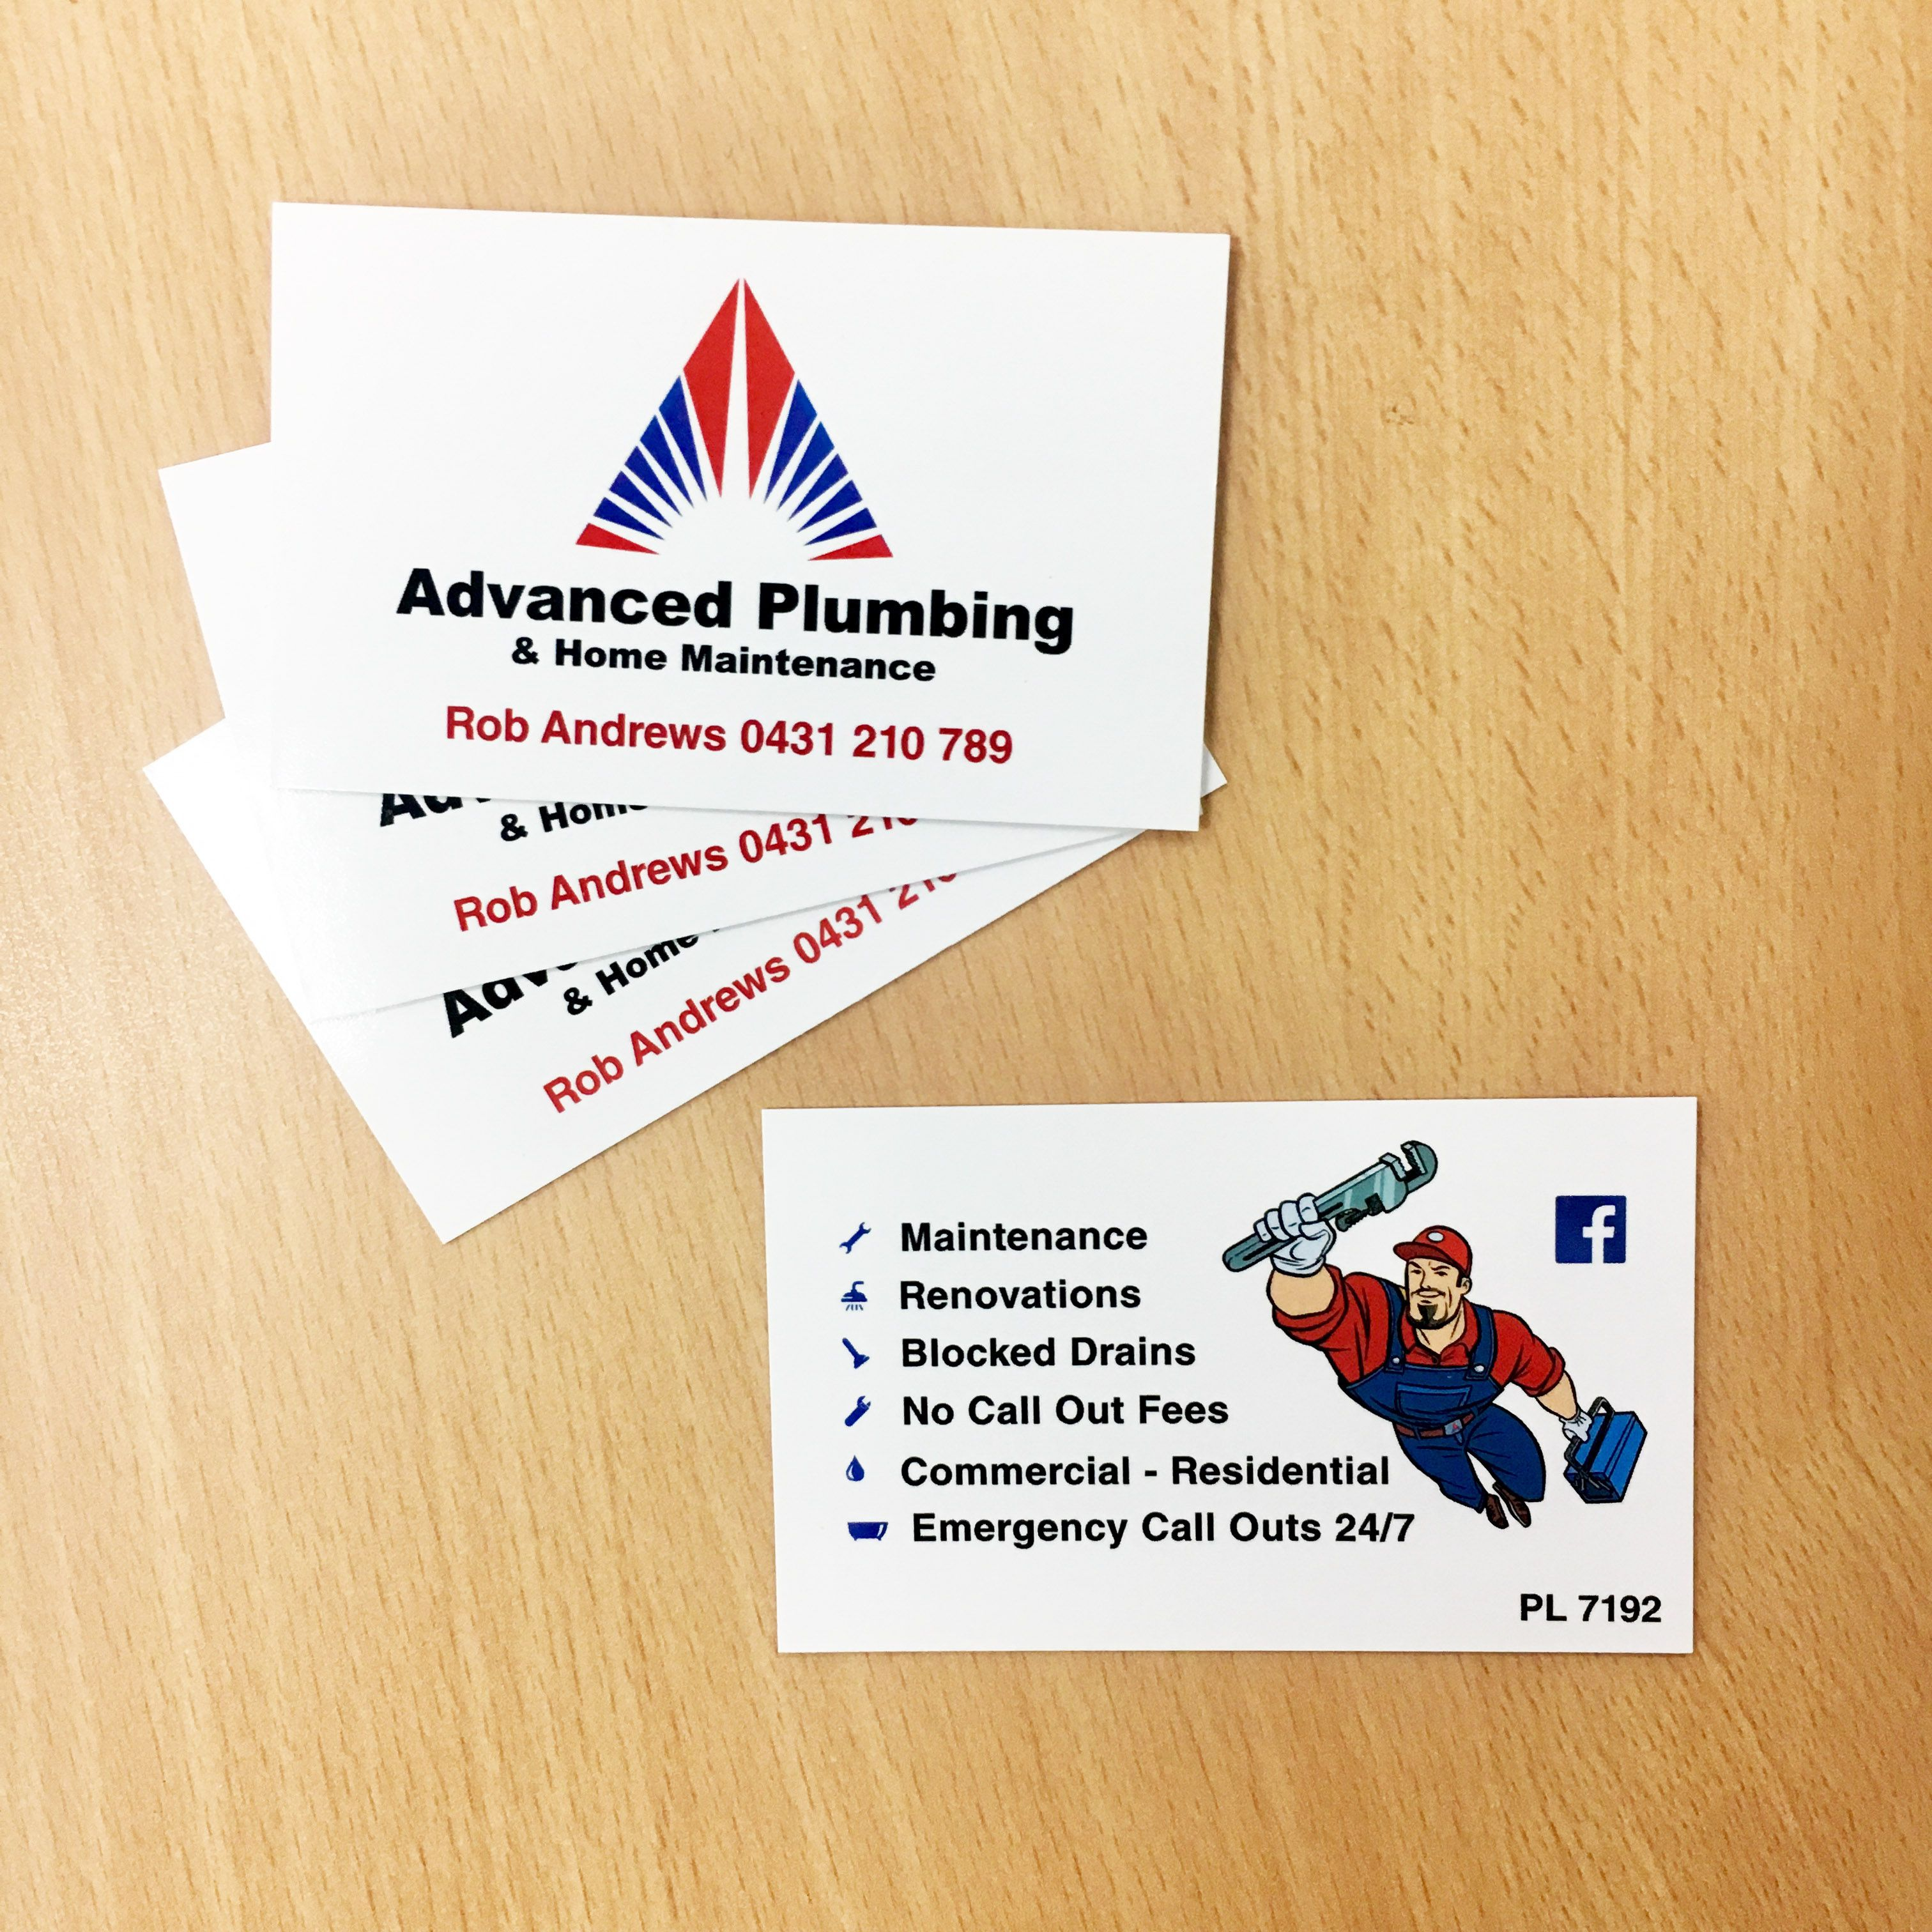 Advanced Plumbing Business Cards Design And Print Business Card Design Card Design Design